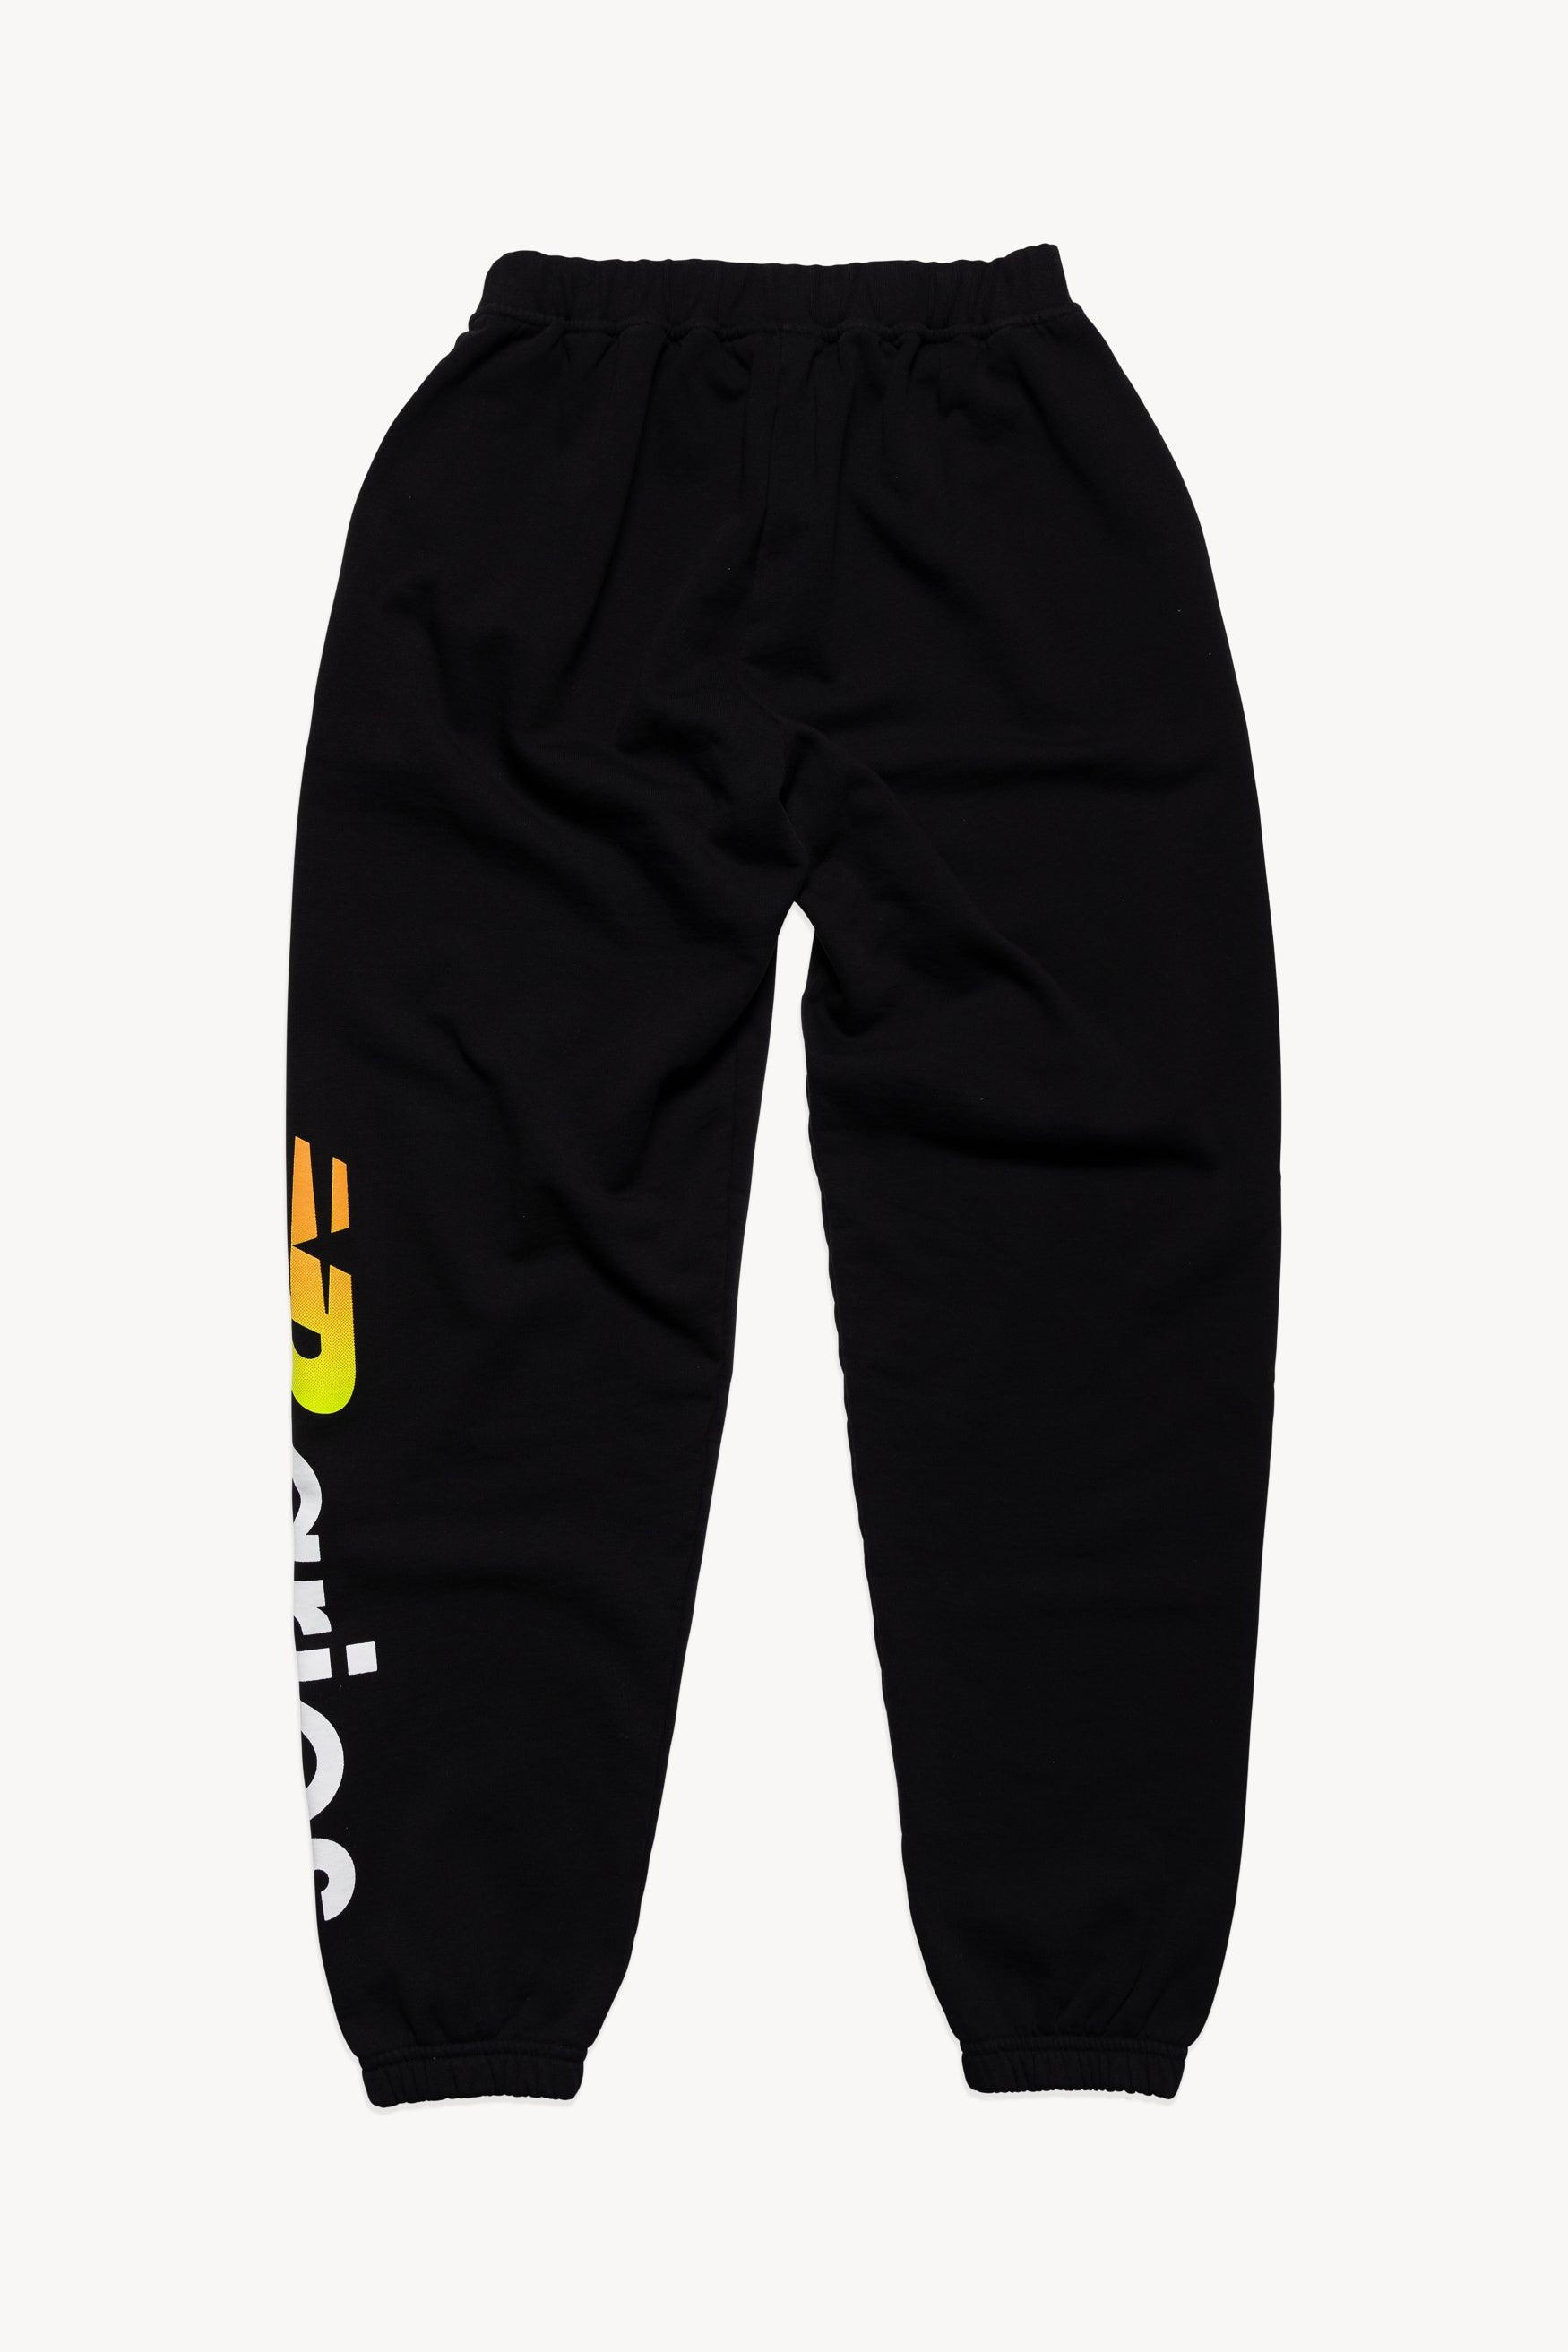 Load image into Gallery viewer, Aries x New Balance Sweatpants